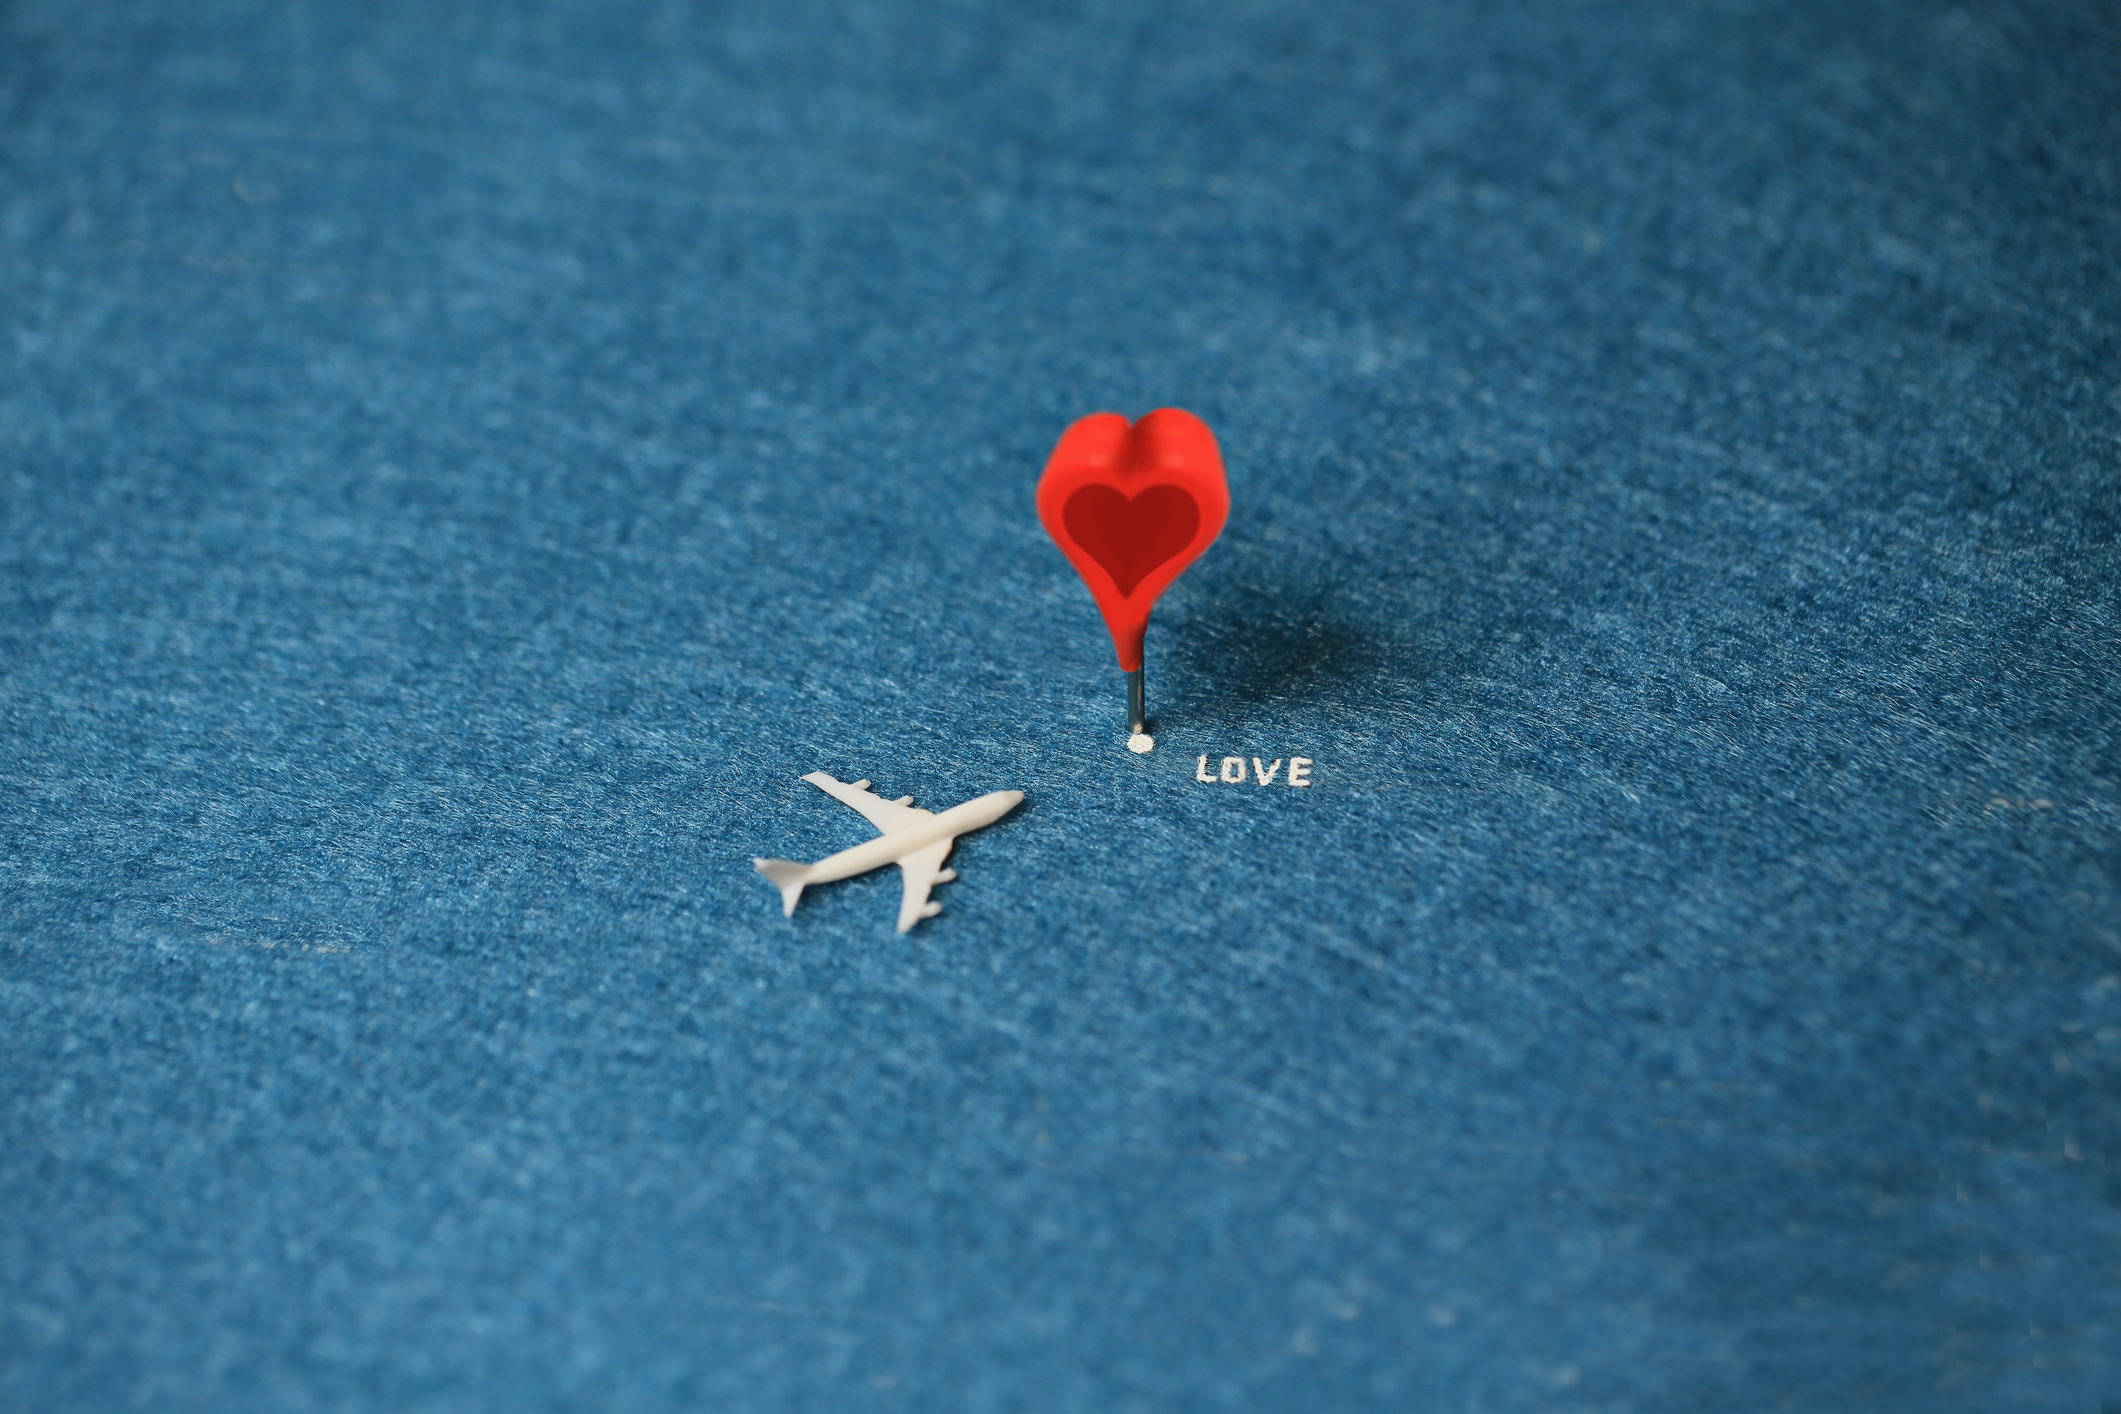 love is the destination to the plane